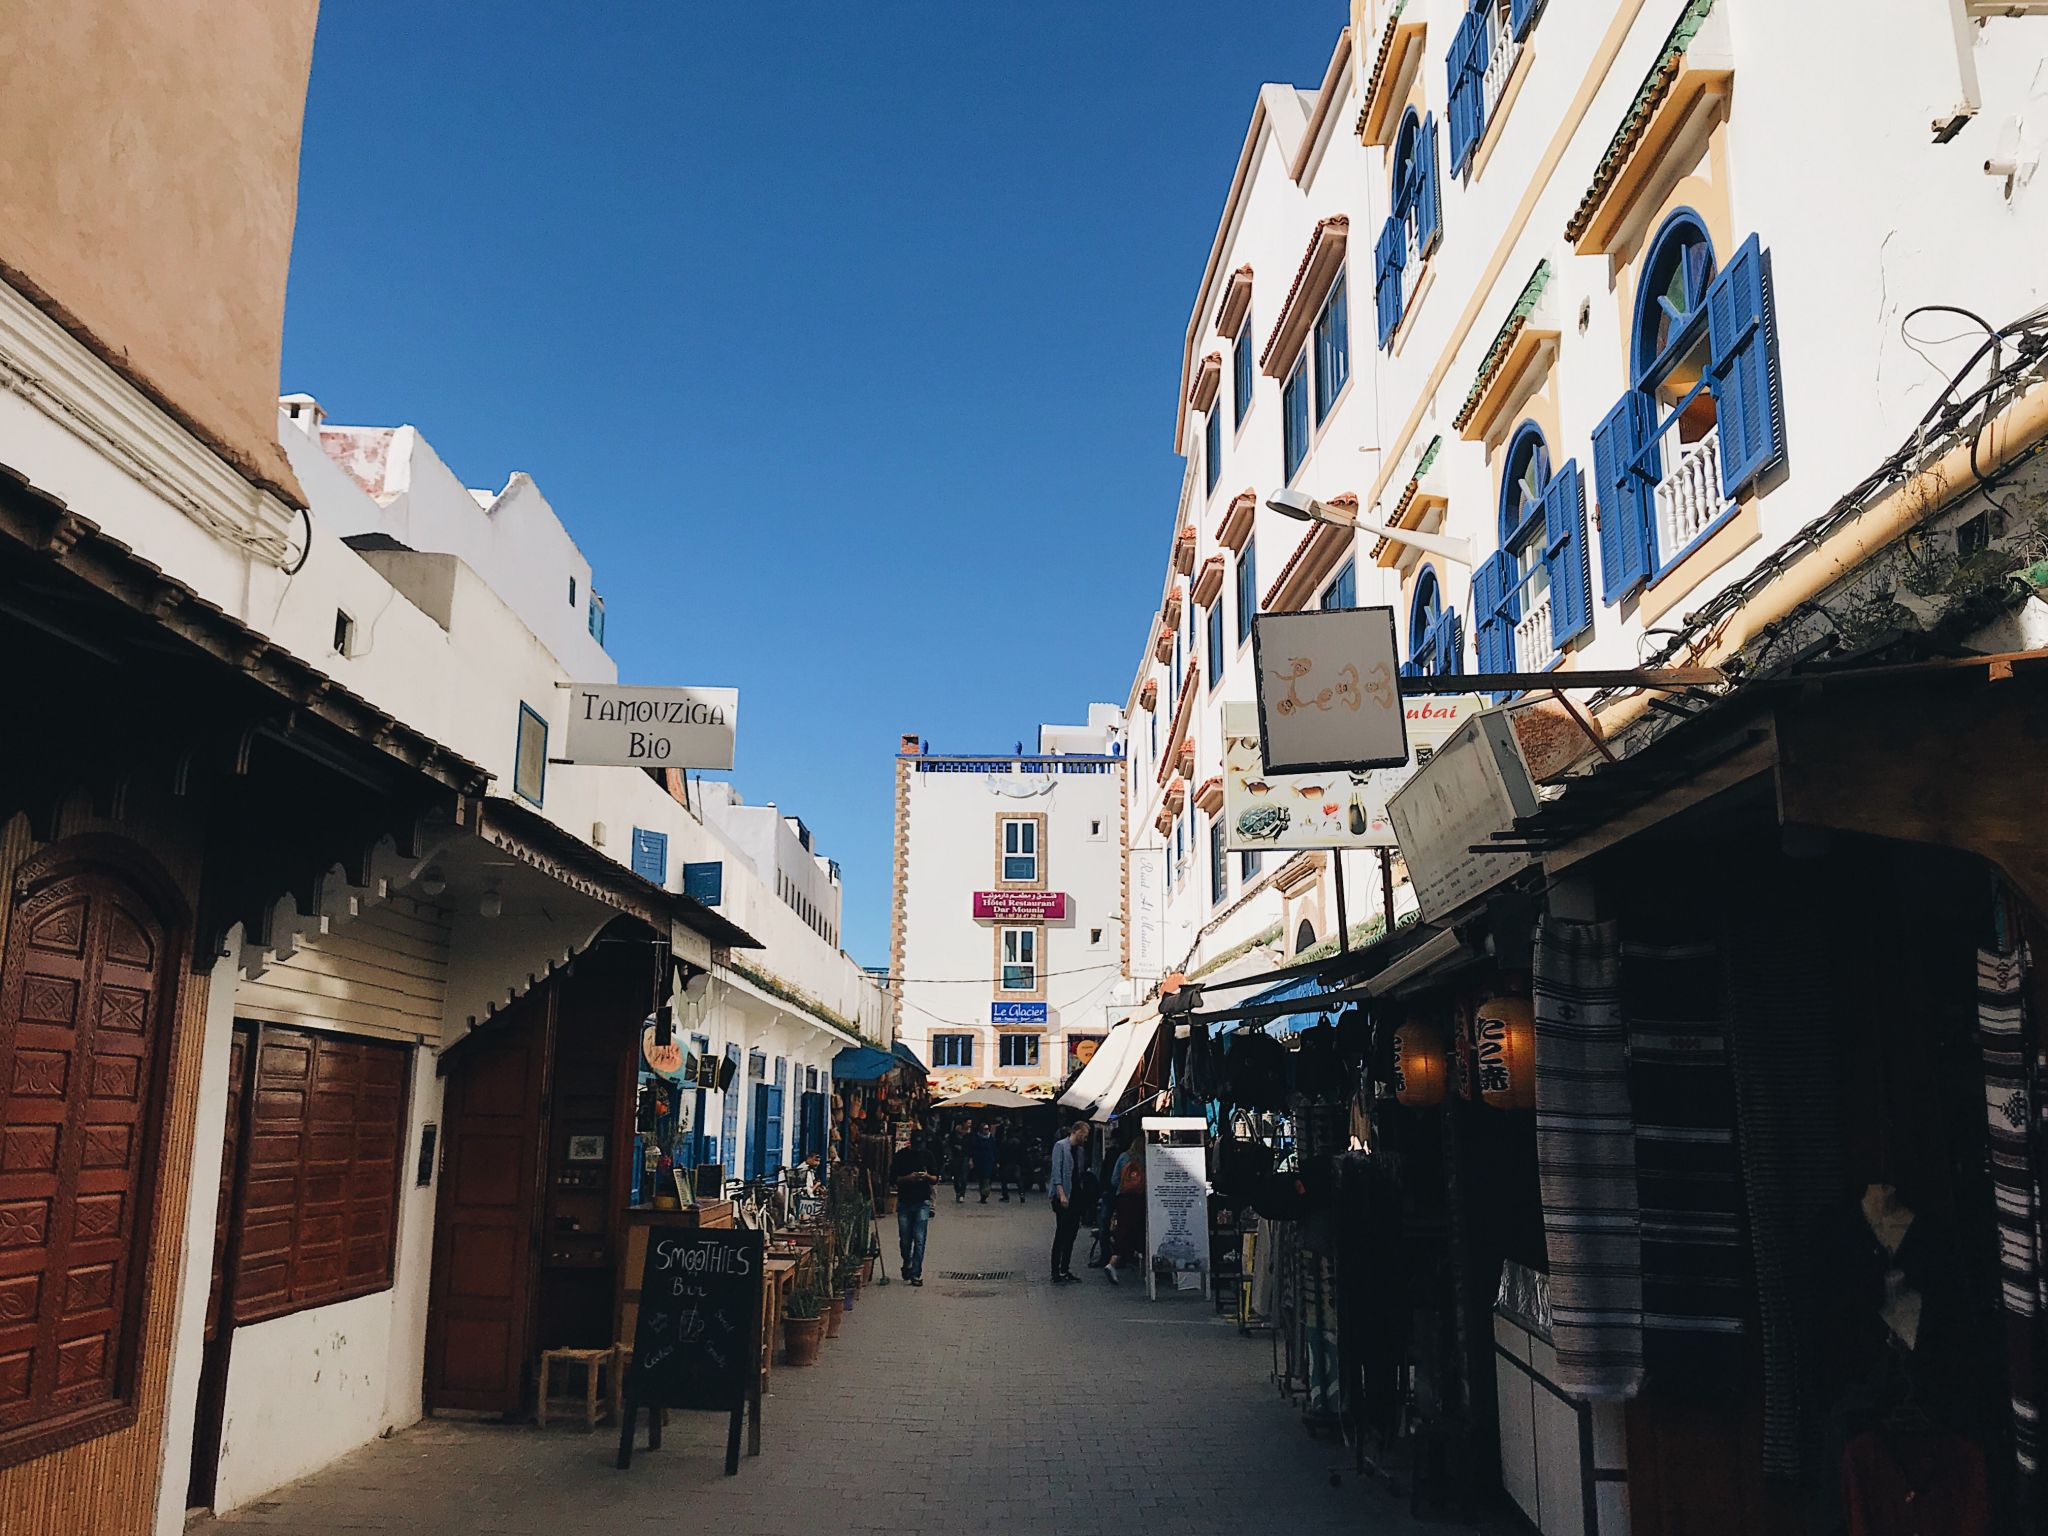 One week in Morocco essaouira